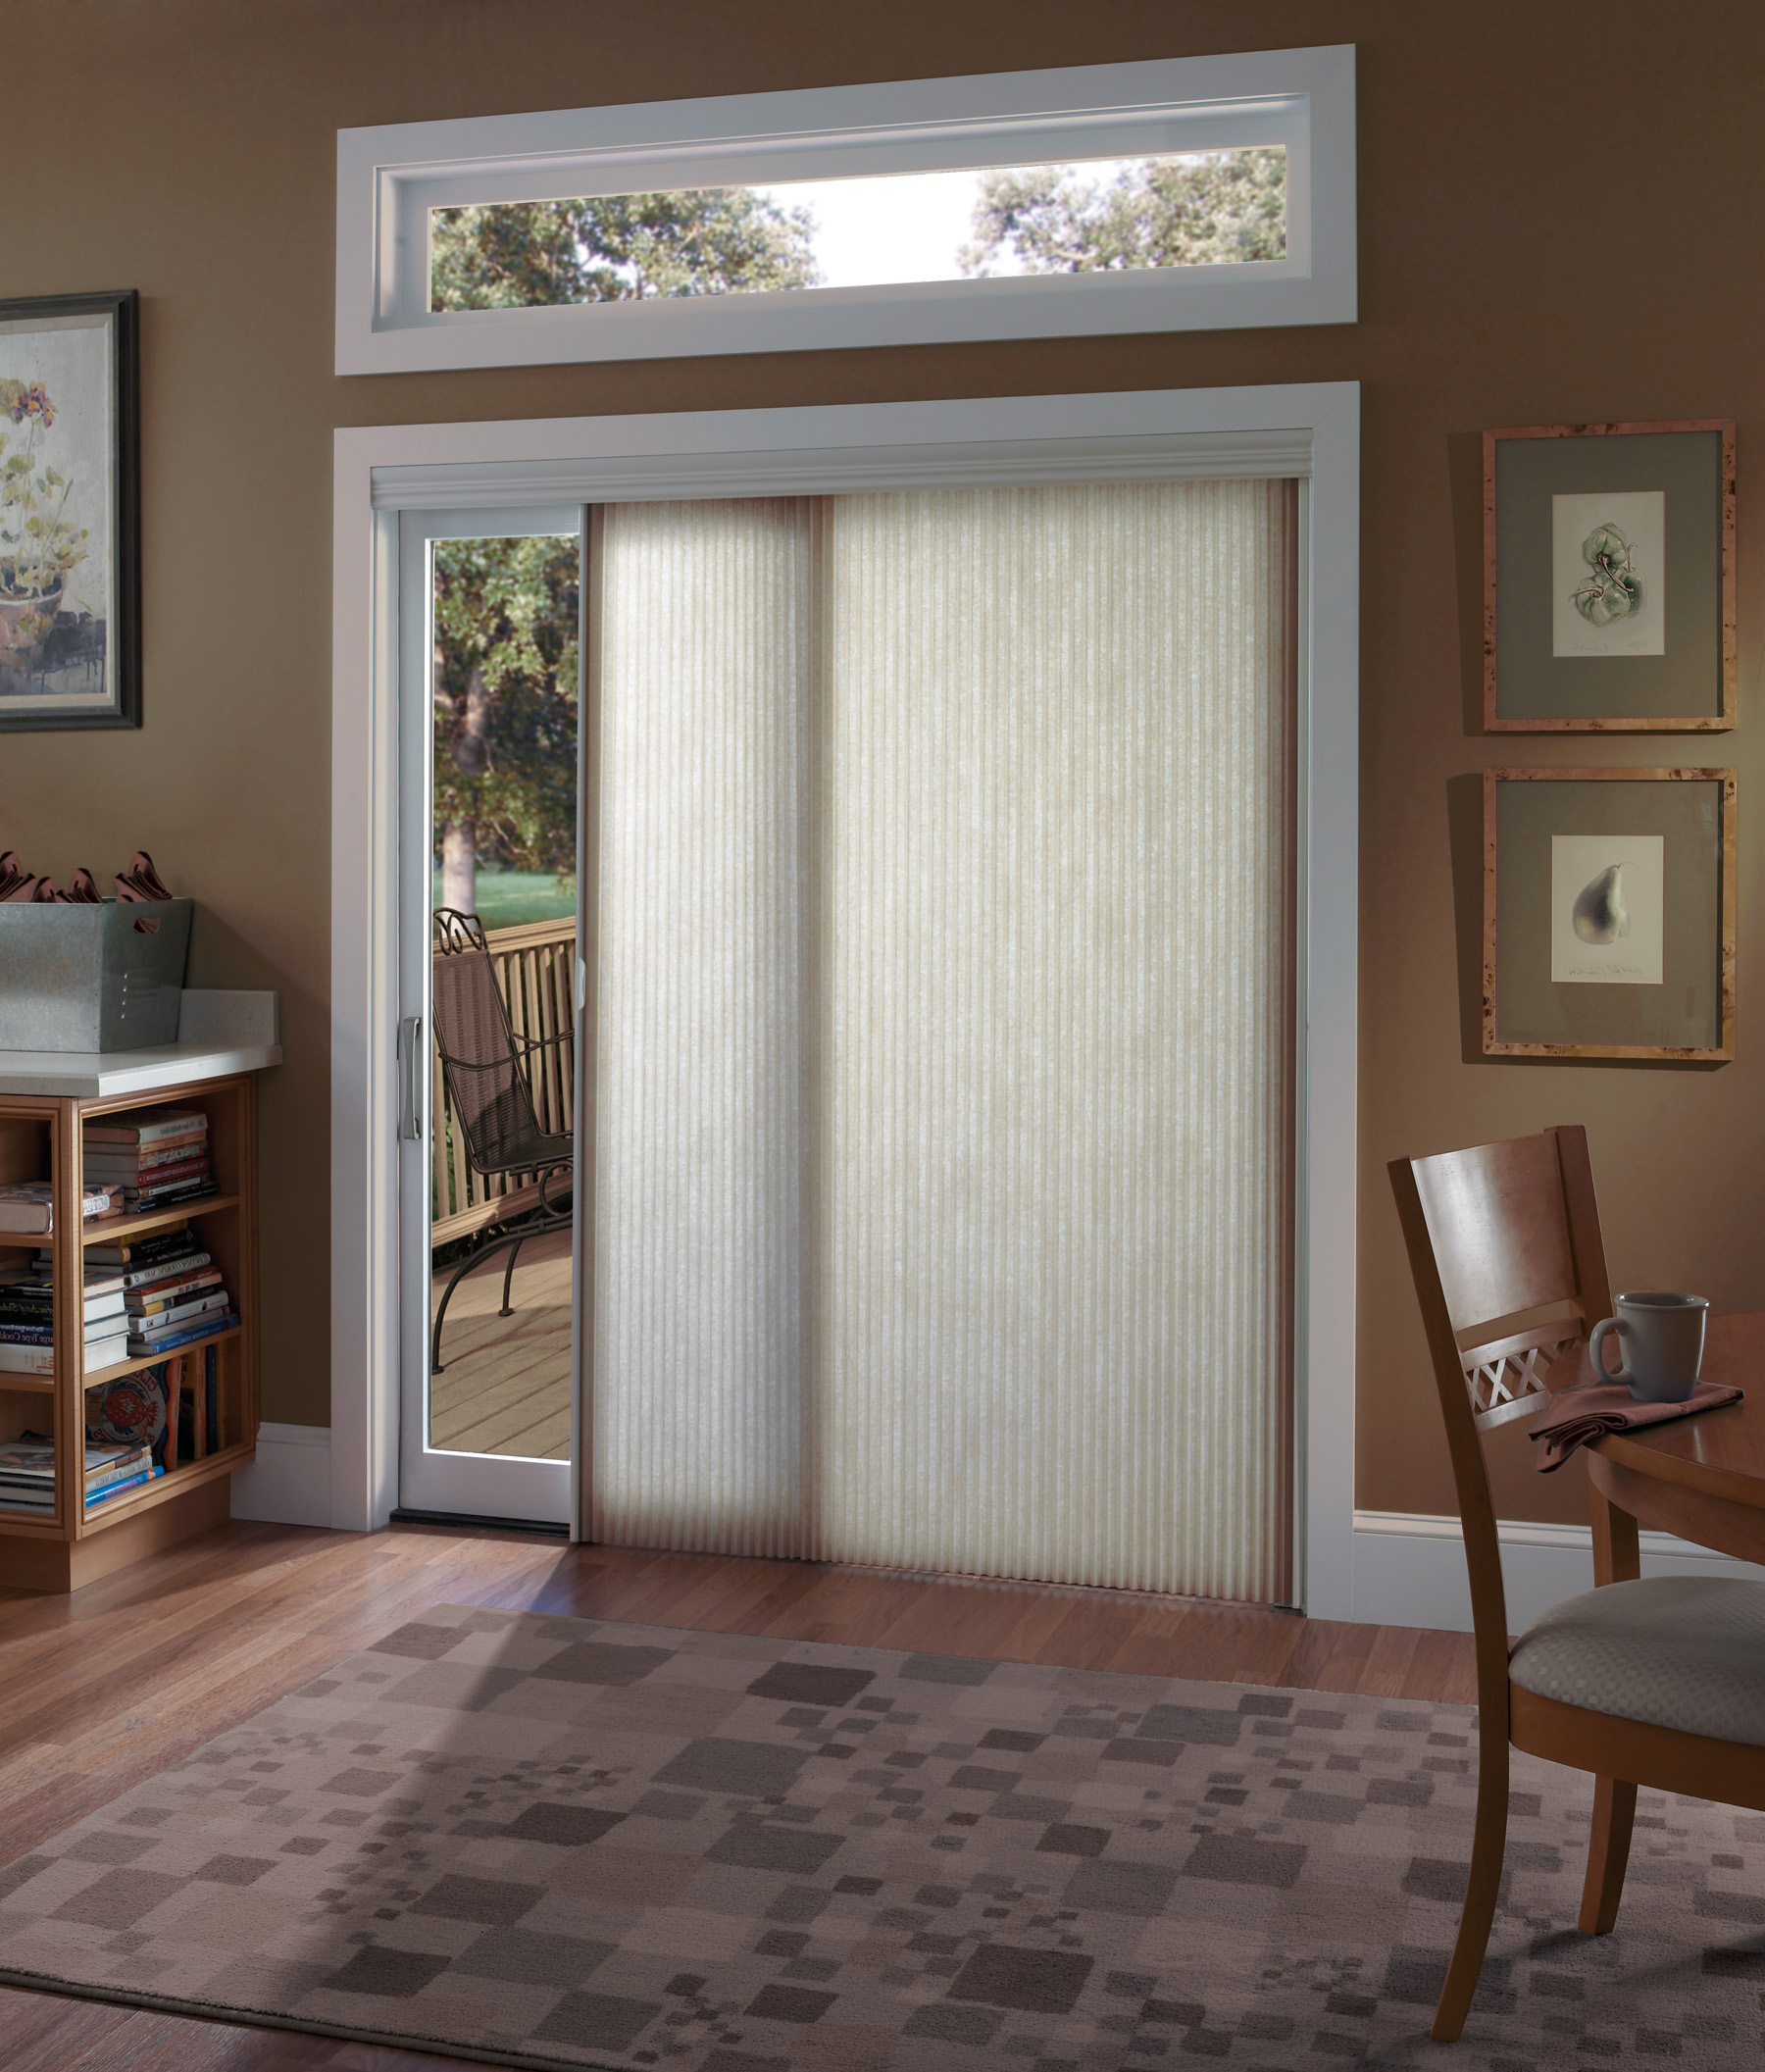 Best variants of window coverings for sliding glass door for Best sliding glass doors